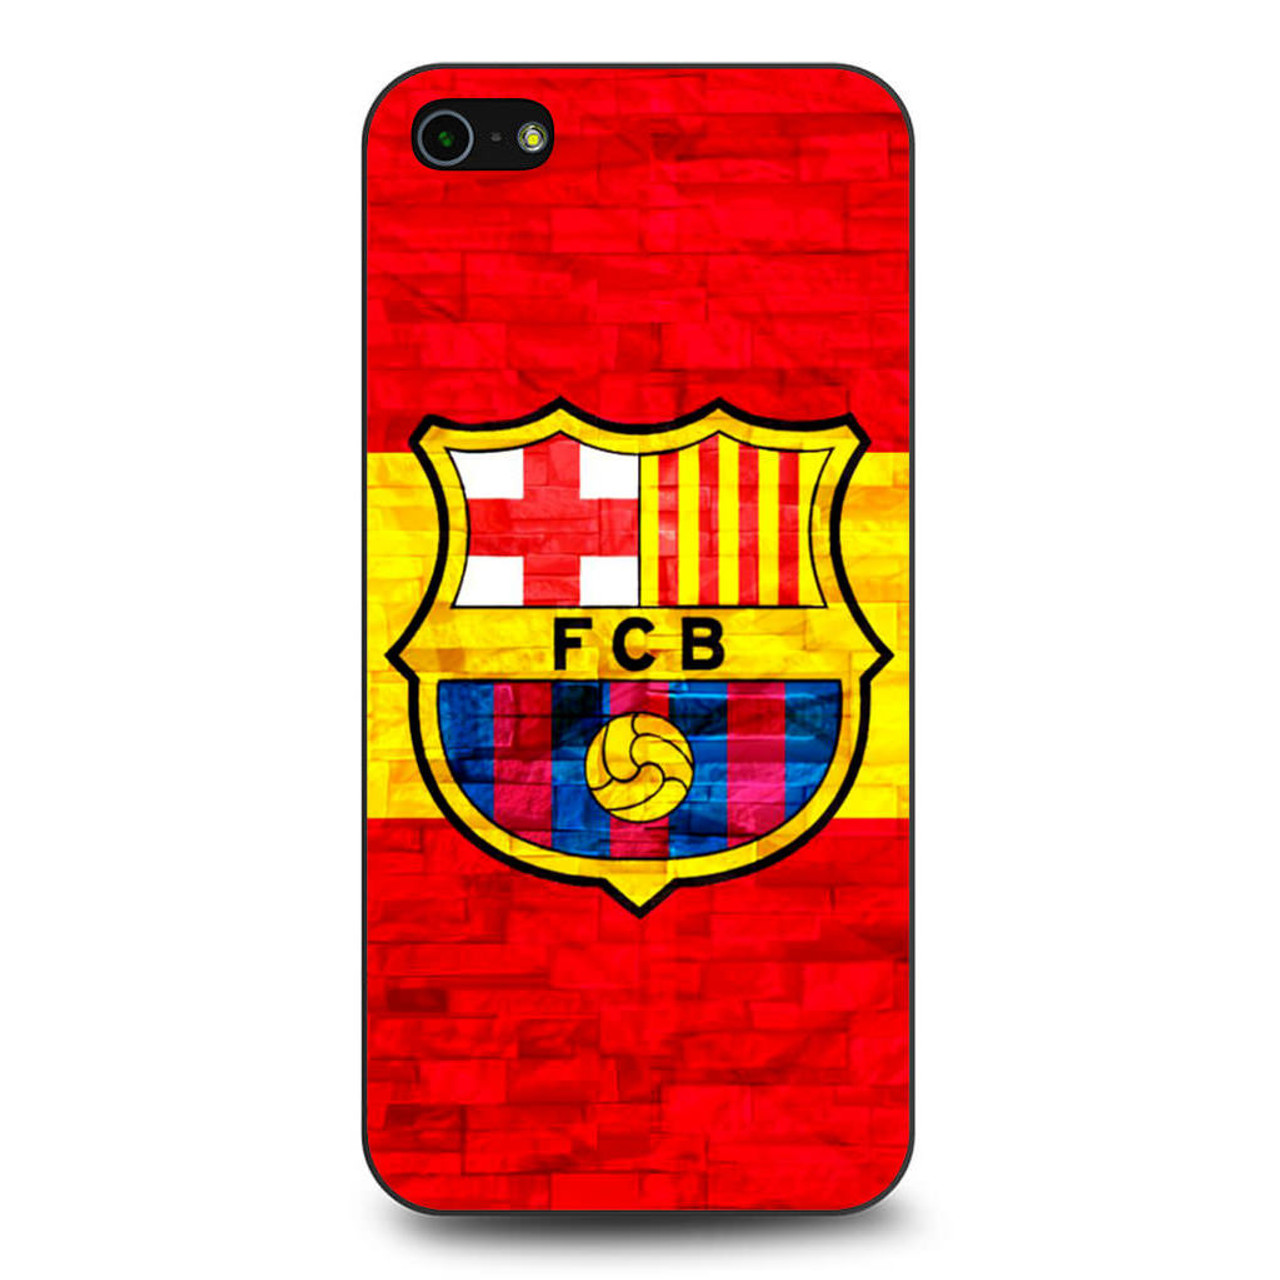 new product e5033 7ddd9 FC Barcelona Barca iPhone 5/5S/SE Case